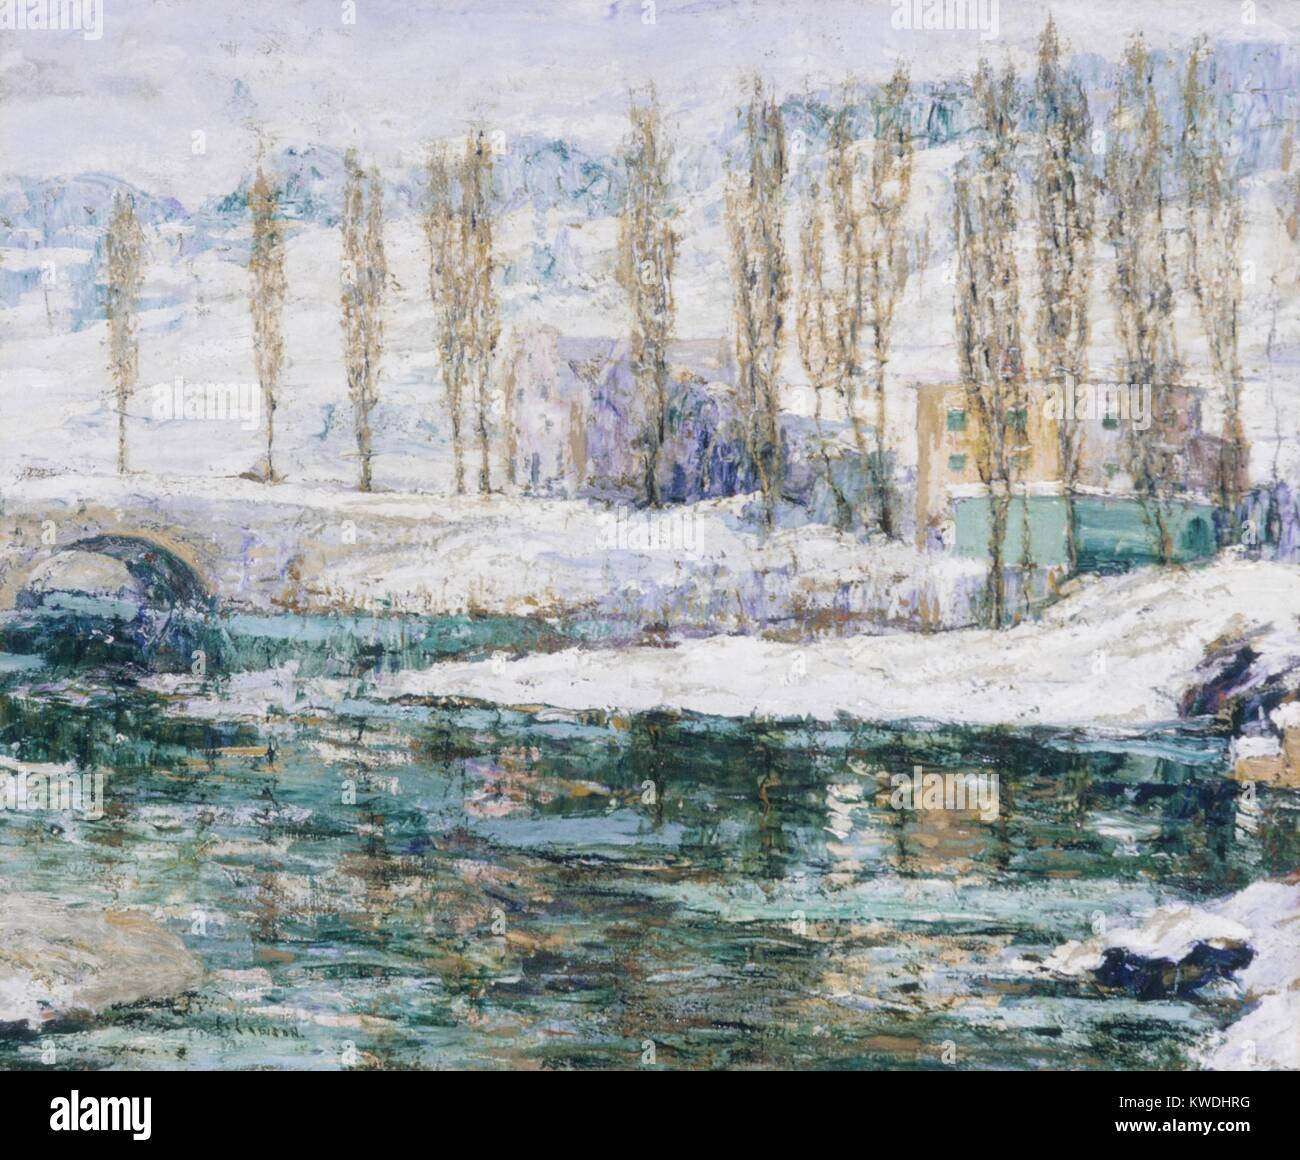 WINTER, by Ernest Lawson, 1914, American painting, oil on canvas. Born in Halifax, Nova Scotia, Lawson was a New - Stock Image